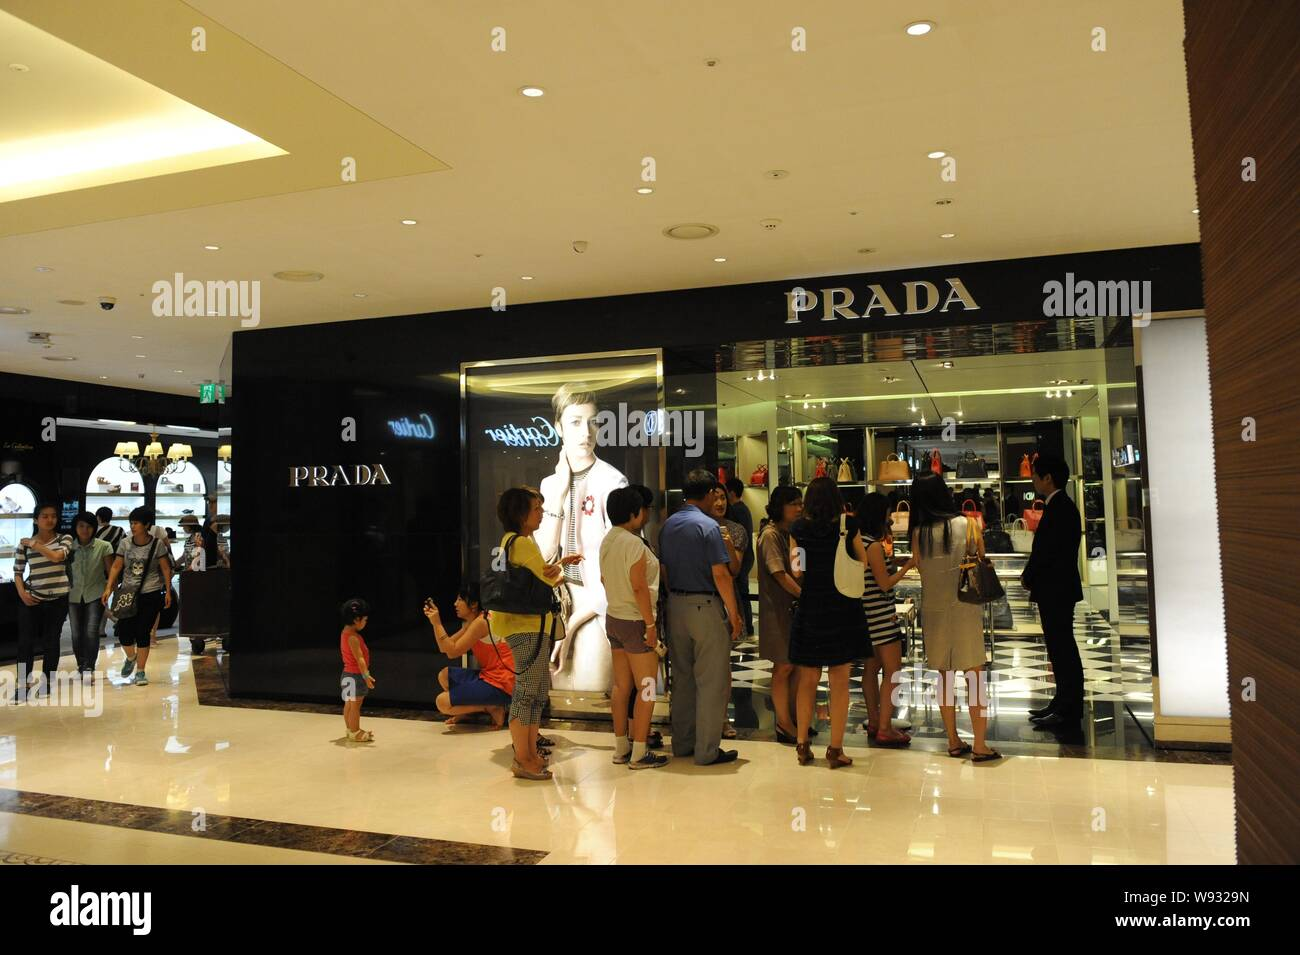 --FILE--Customers queue up in front of a Prada store at the Shilla Duty Free Shop in Seoul, South Korea, 7 July 2013.   Prada SpA, an Italian maker of Stock Photo